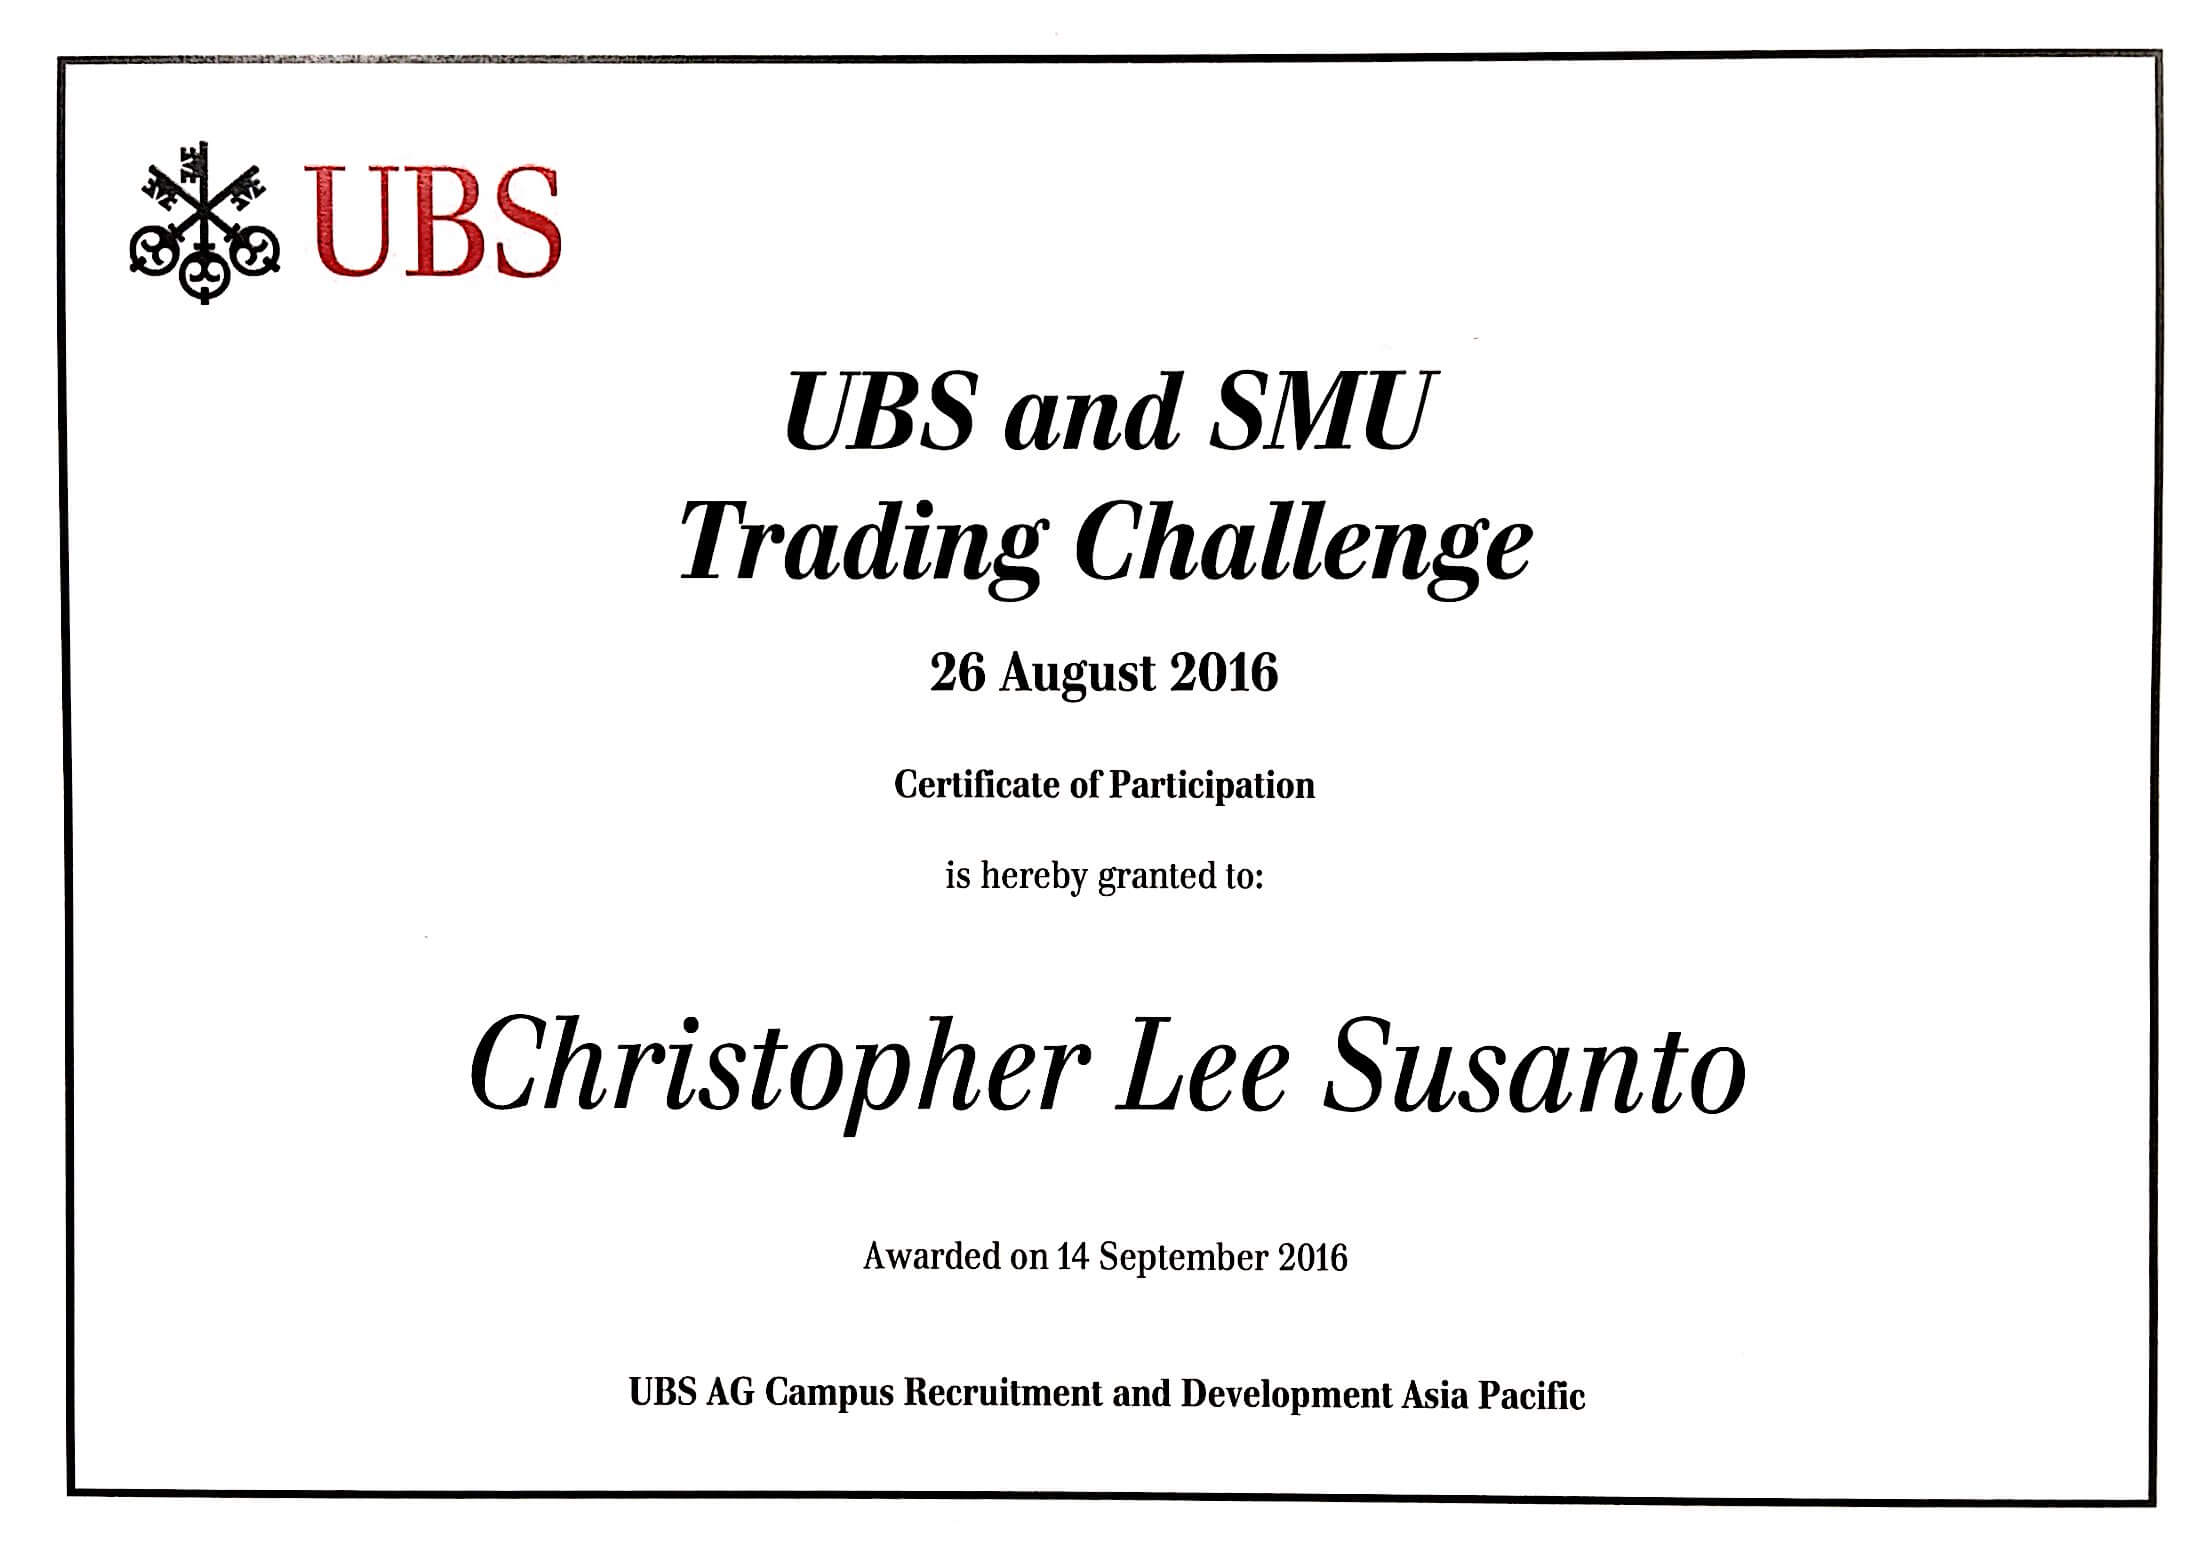 Ubs stock options account